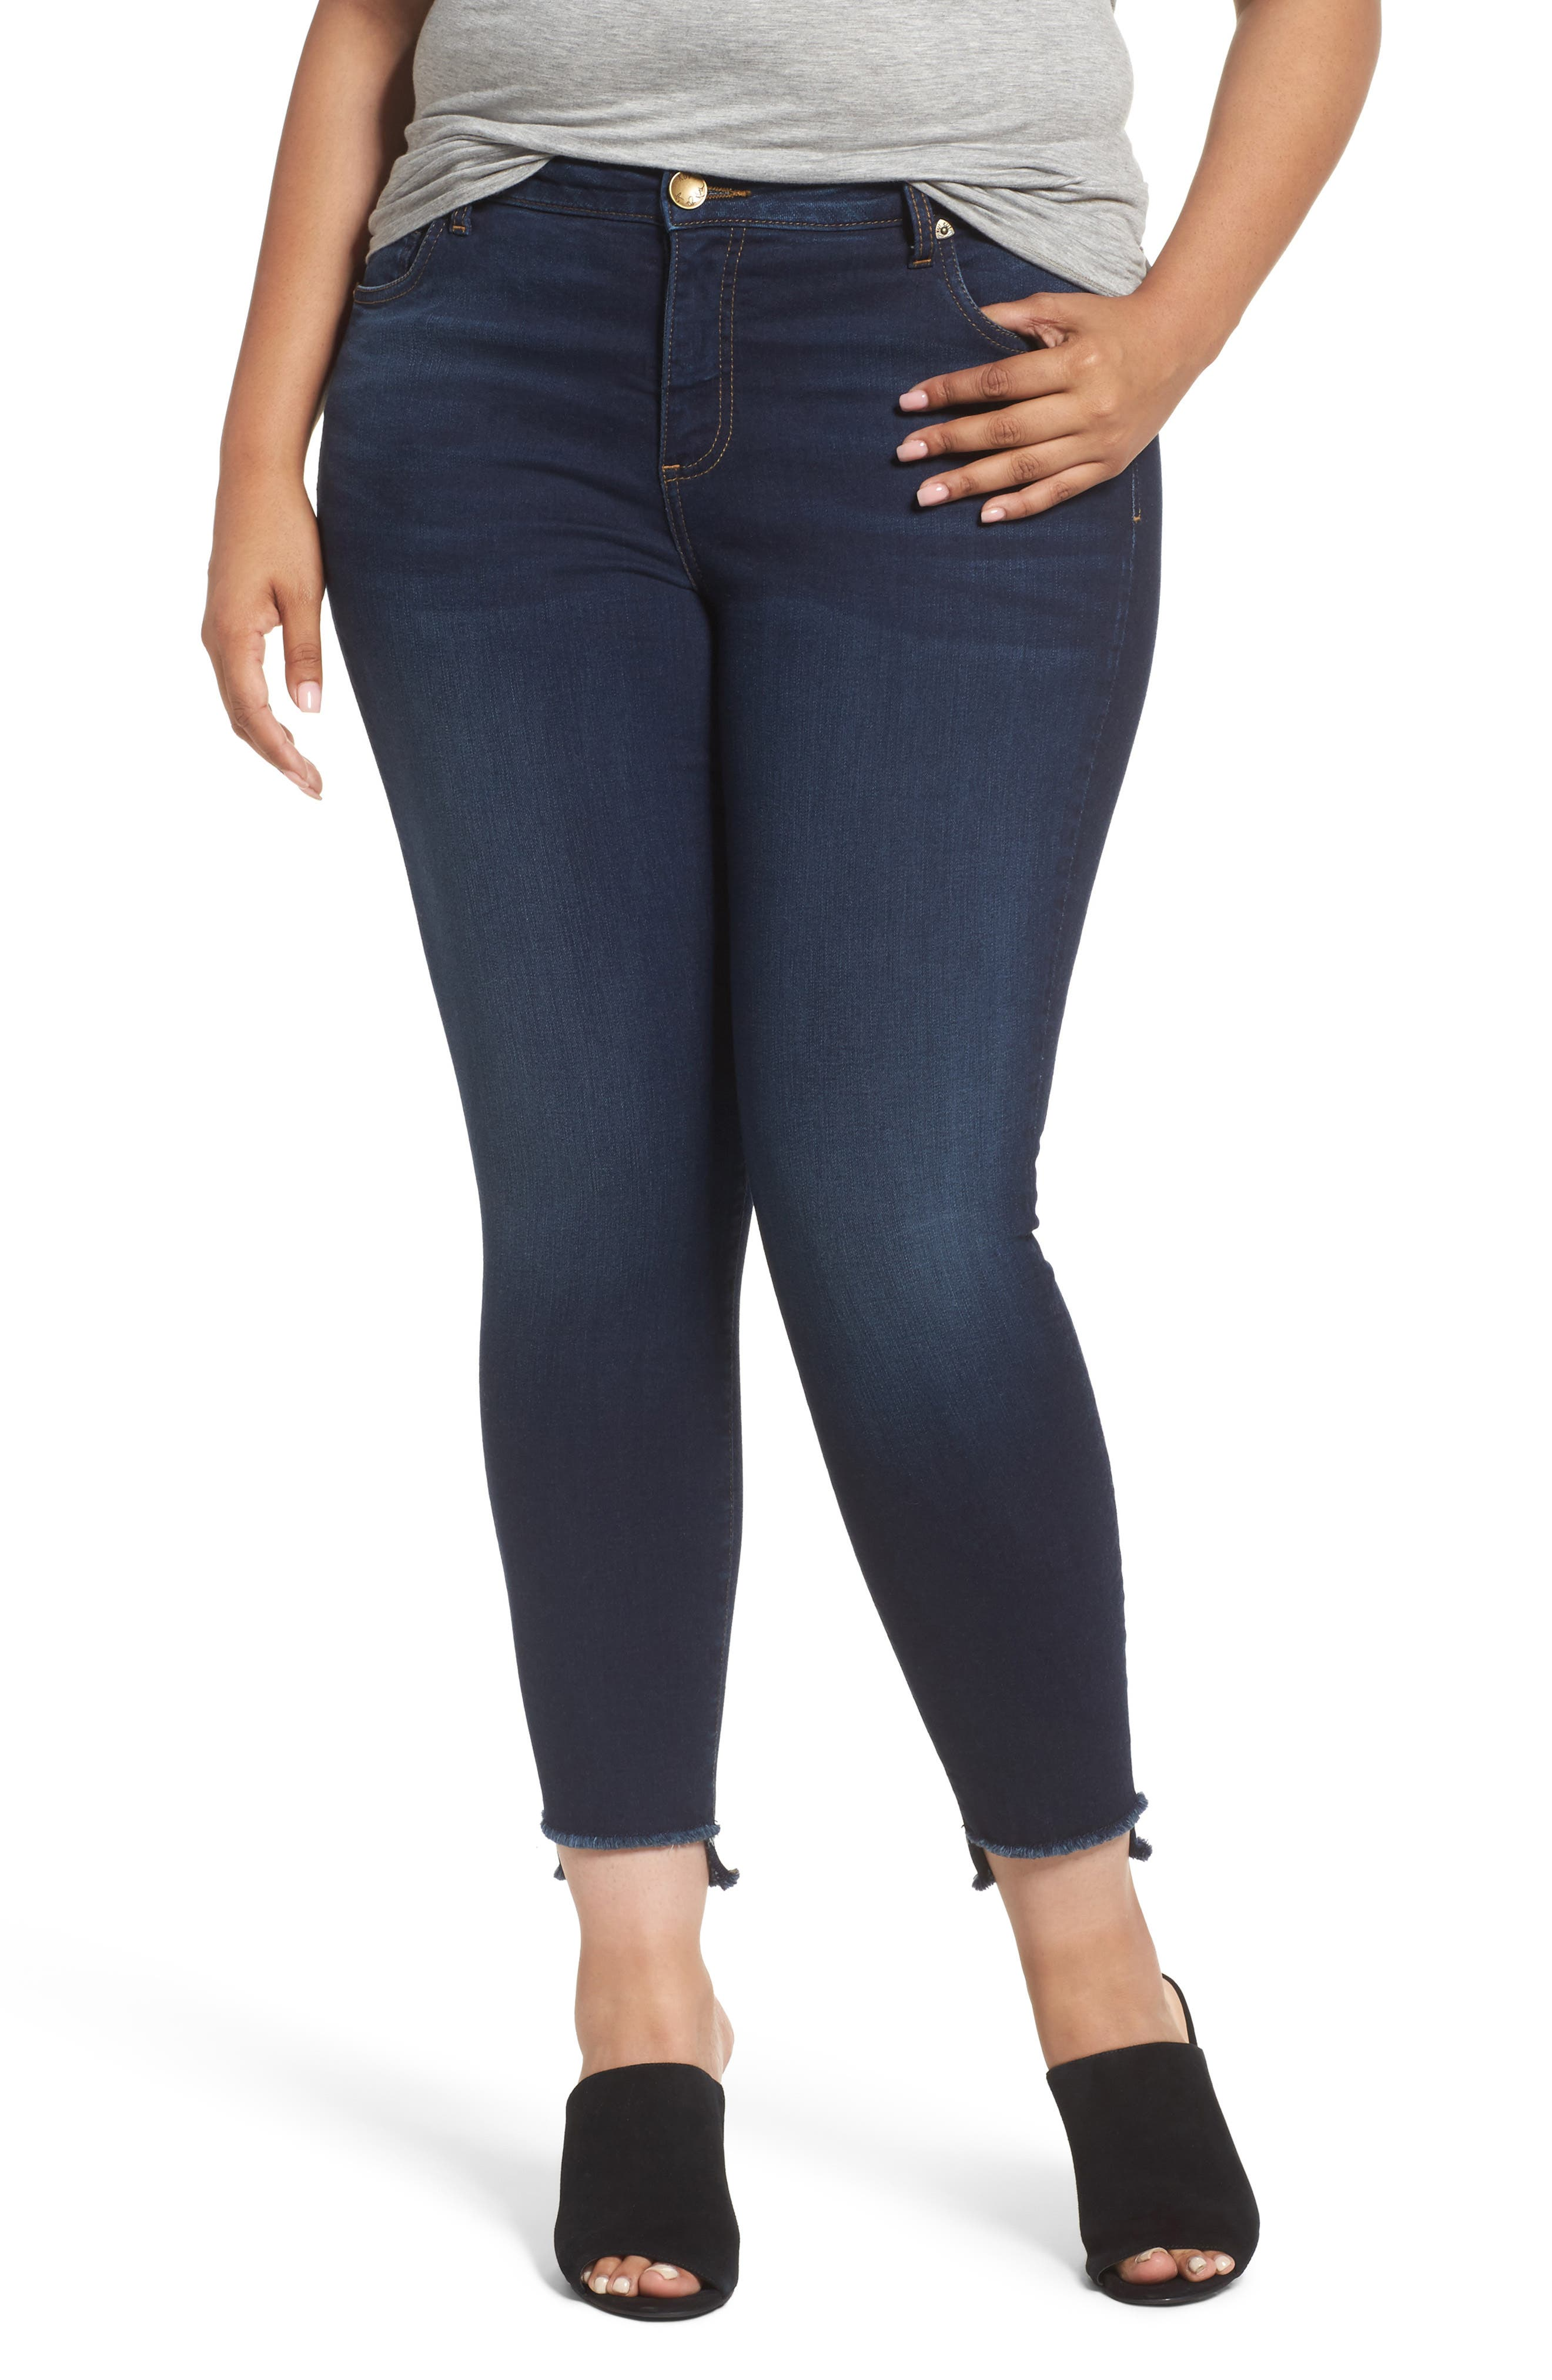 Plus Size Kut From The Kloth Connie Step Hem Skinny Ankle Jeans